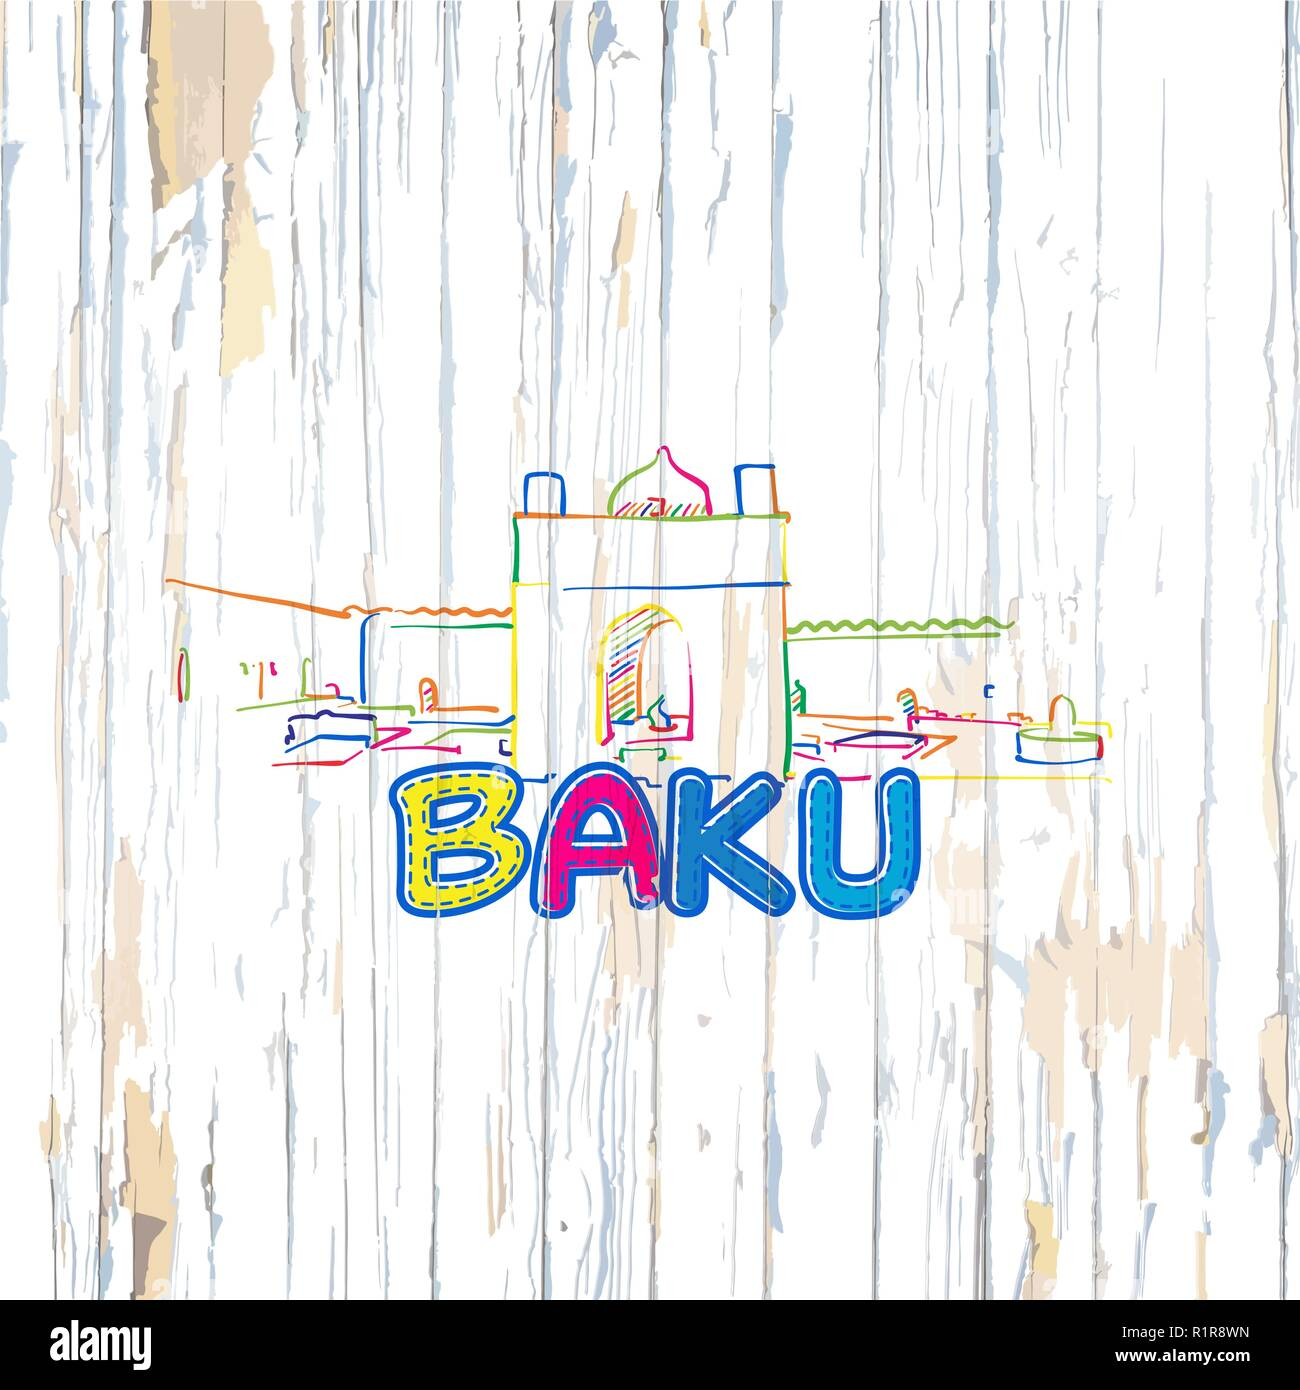 Colorful Baku drawing on wooden background. Hand drawn vector illustration. - Stock Vector